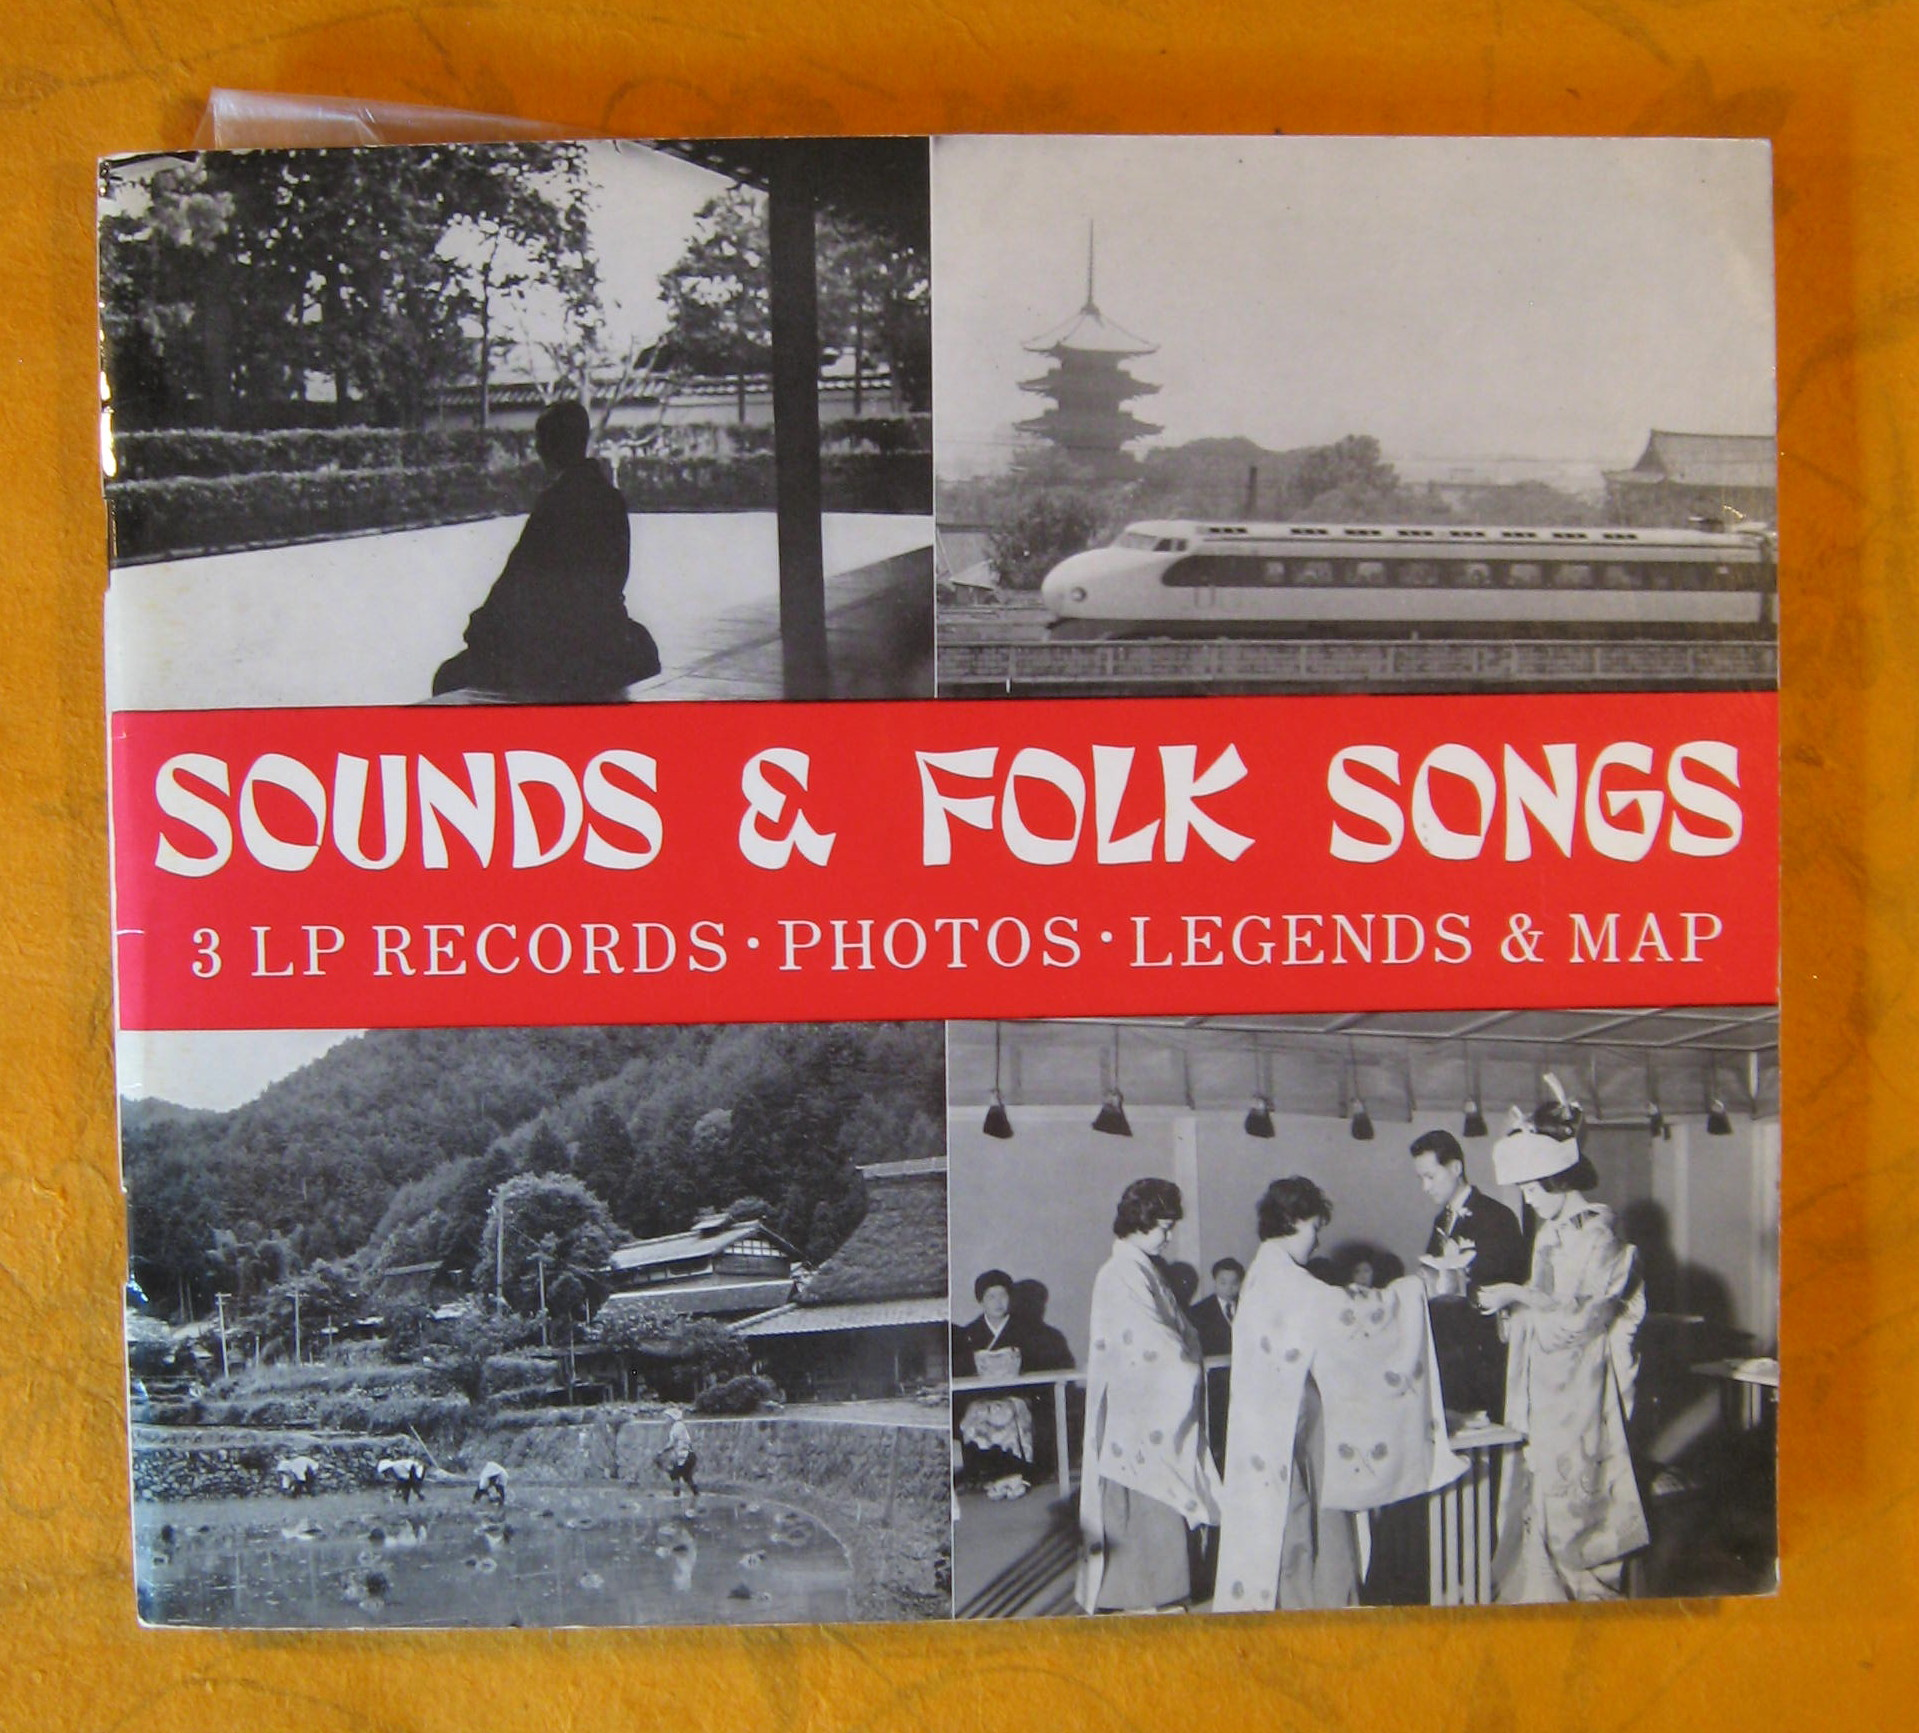 Image for Sounds & Folk Songs: 3 LP Records; Photos; Legends & Map